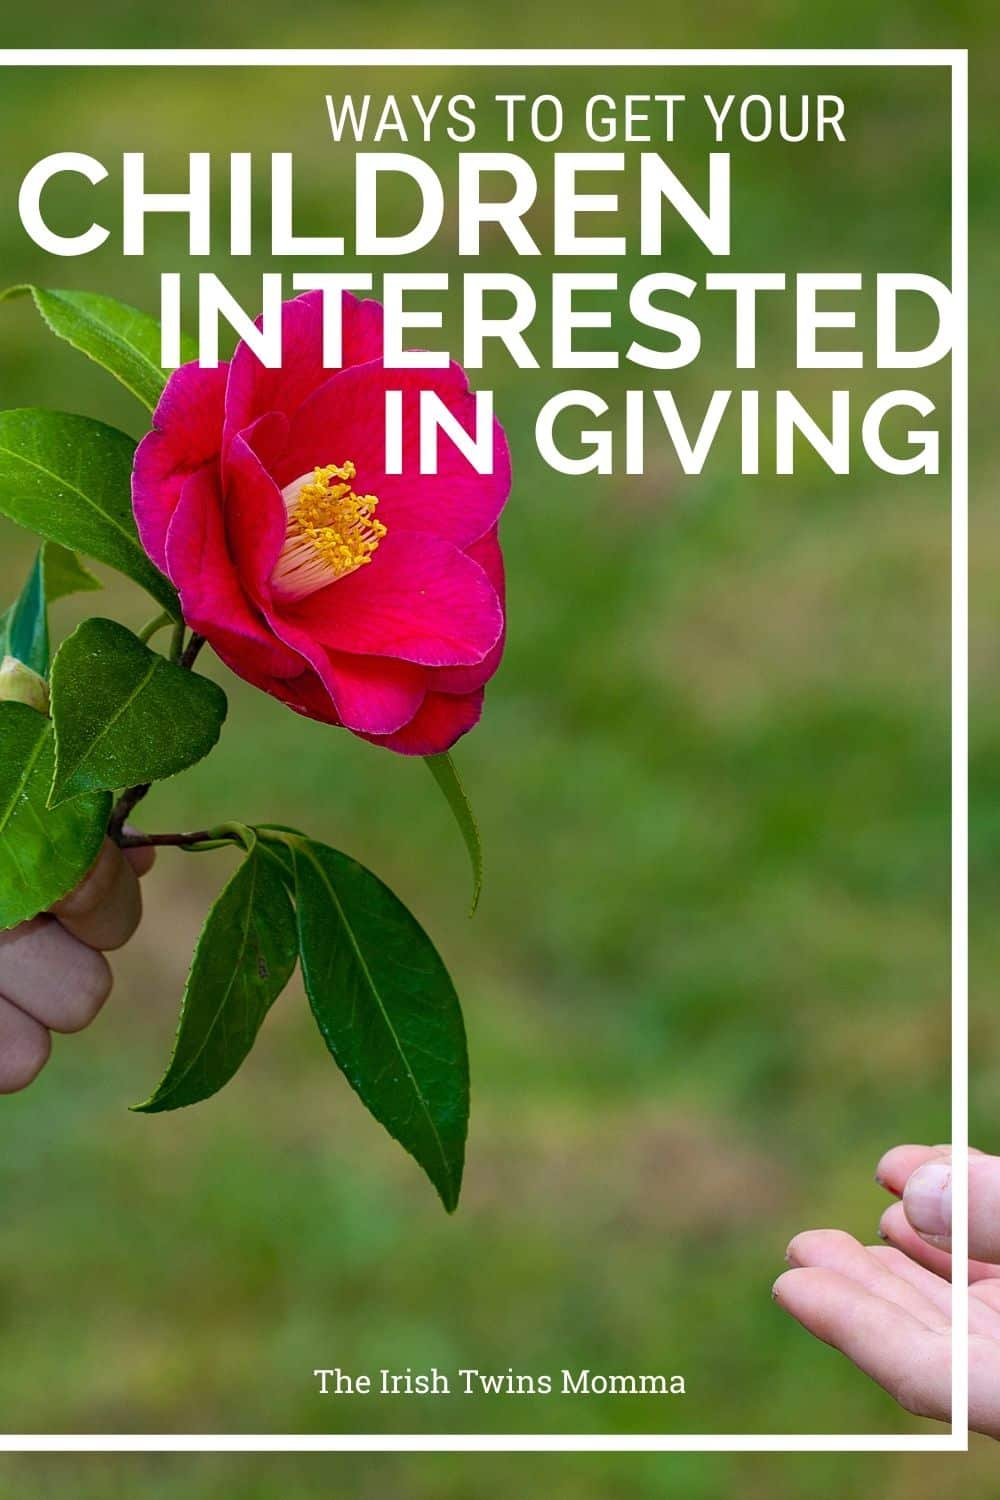 Ways to get your children interested in giving